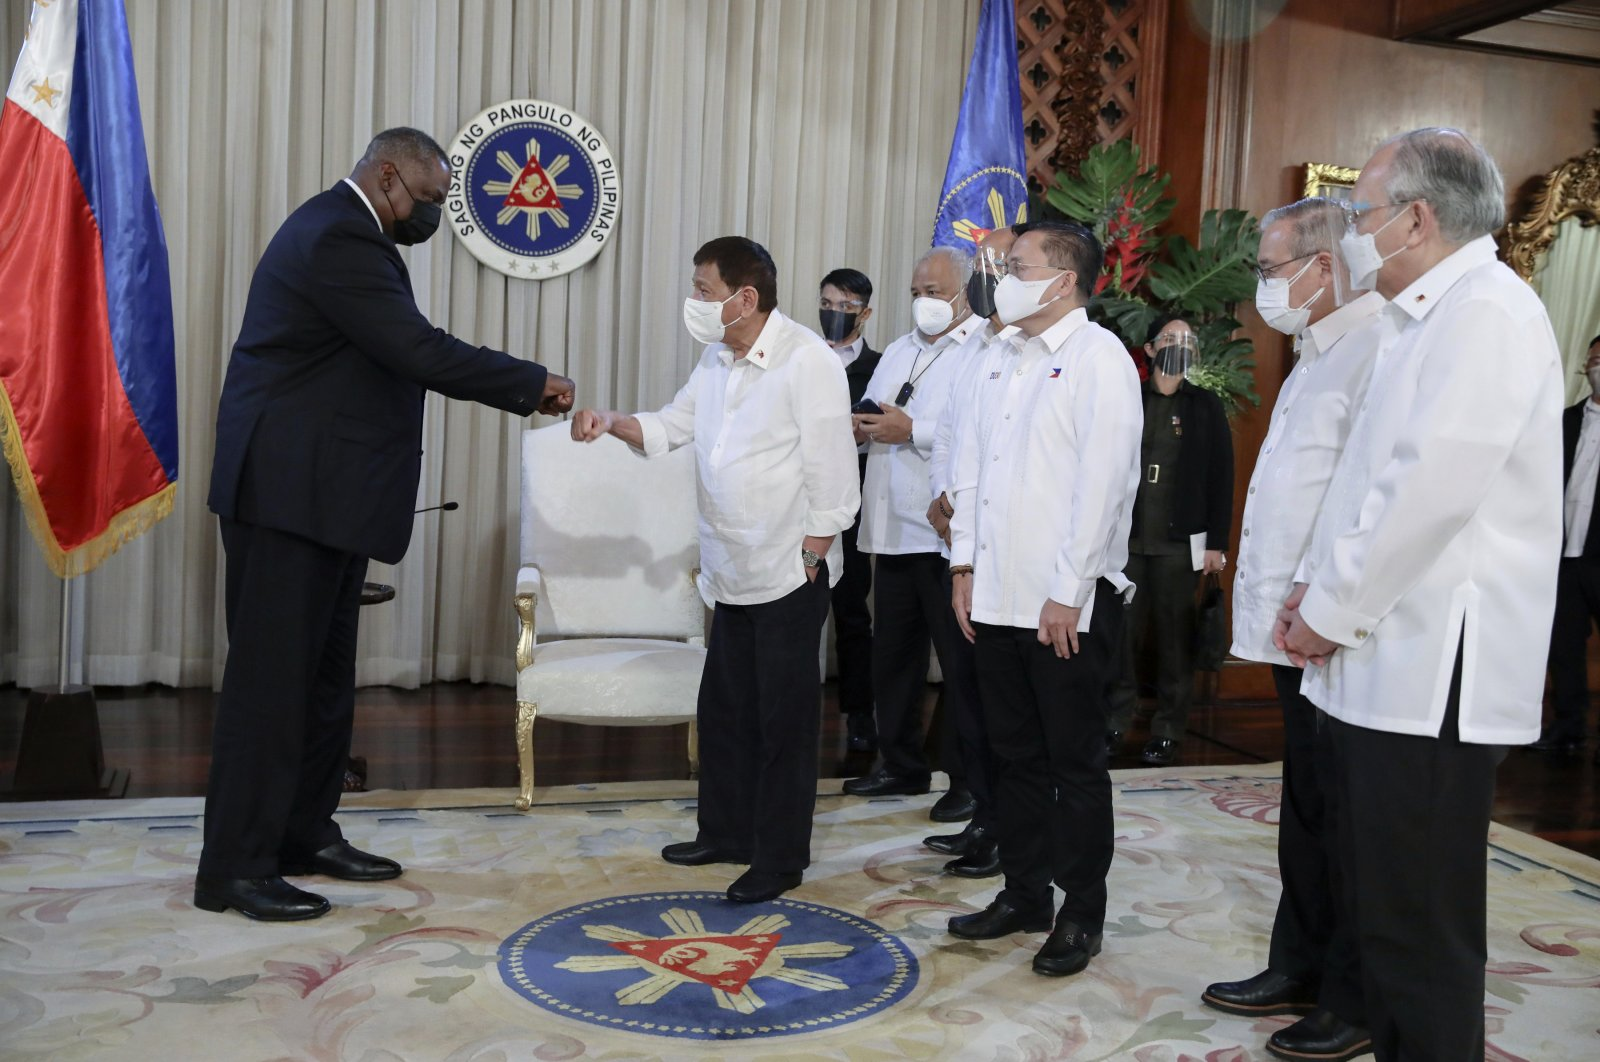 In this photo provided by the Malacanang Presidential Photographers Division, U.S. Secretary of Defense Lloyd Austin (L) does a fist bump with Philippine President Rodrigo Duterte during a courtesy call on the president at the Malacanang Palace in Manila, Philippines, July 29, 2021. (AP Photo)